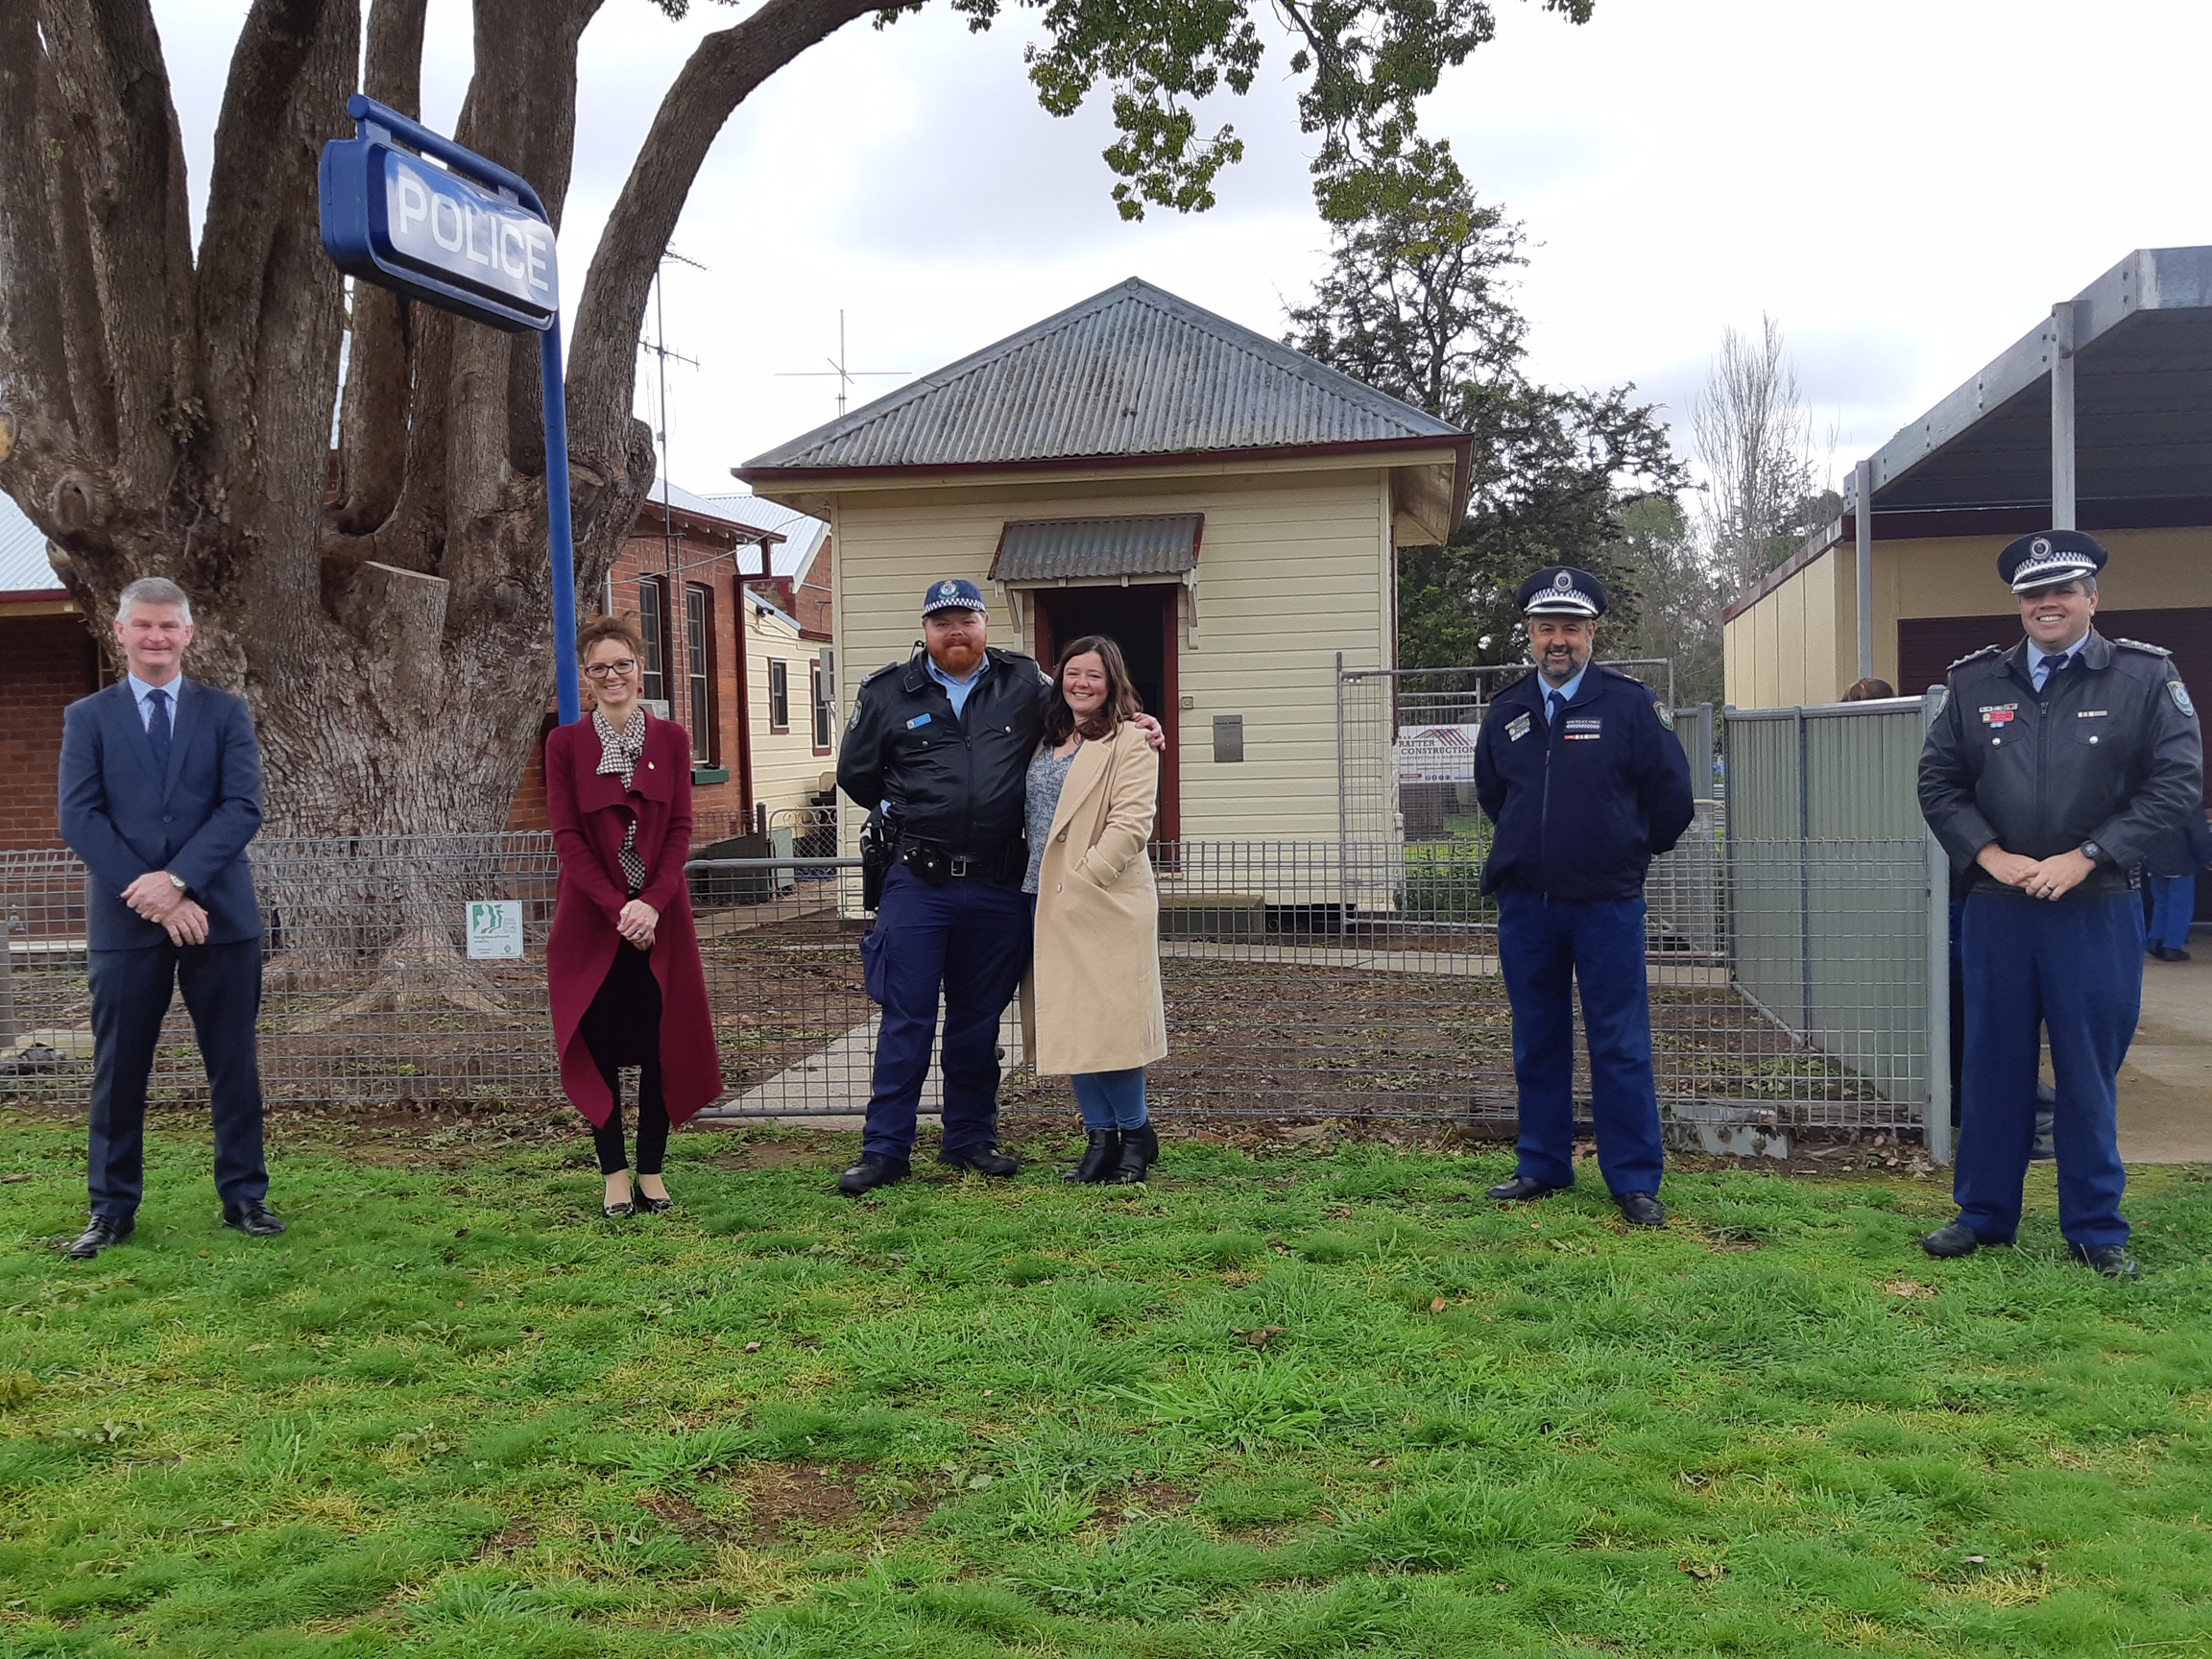 Hilltops Mayor Cr Brian Ingram, Steph Cooke MP, Senior Constable Andrew Campbell and his partner Savannah Sissons, acting Hume Commander Superintendent Condon and Inspector Reeves stand in front of the Koorawatha Police Station.